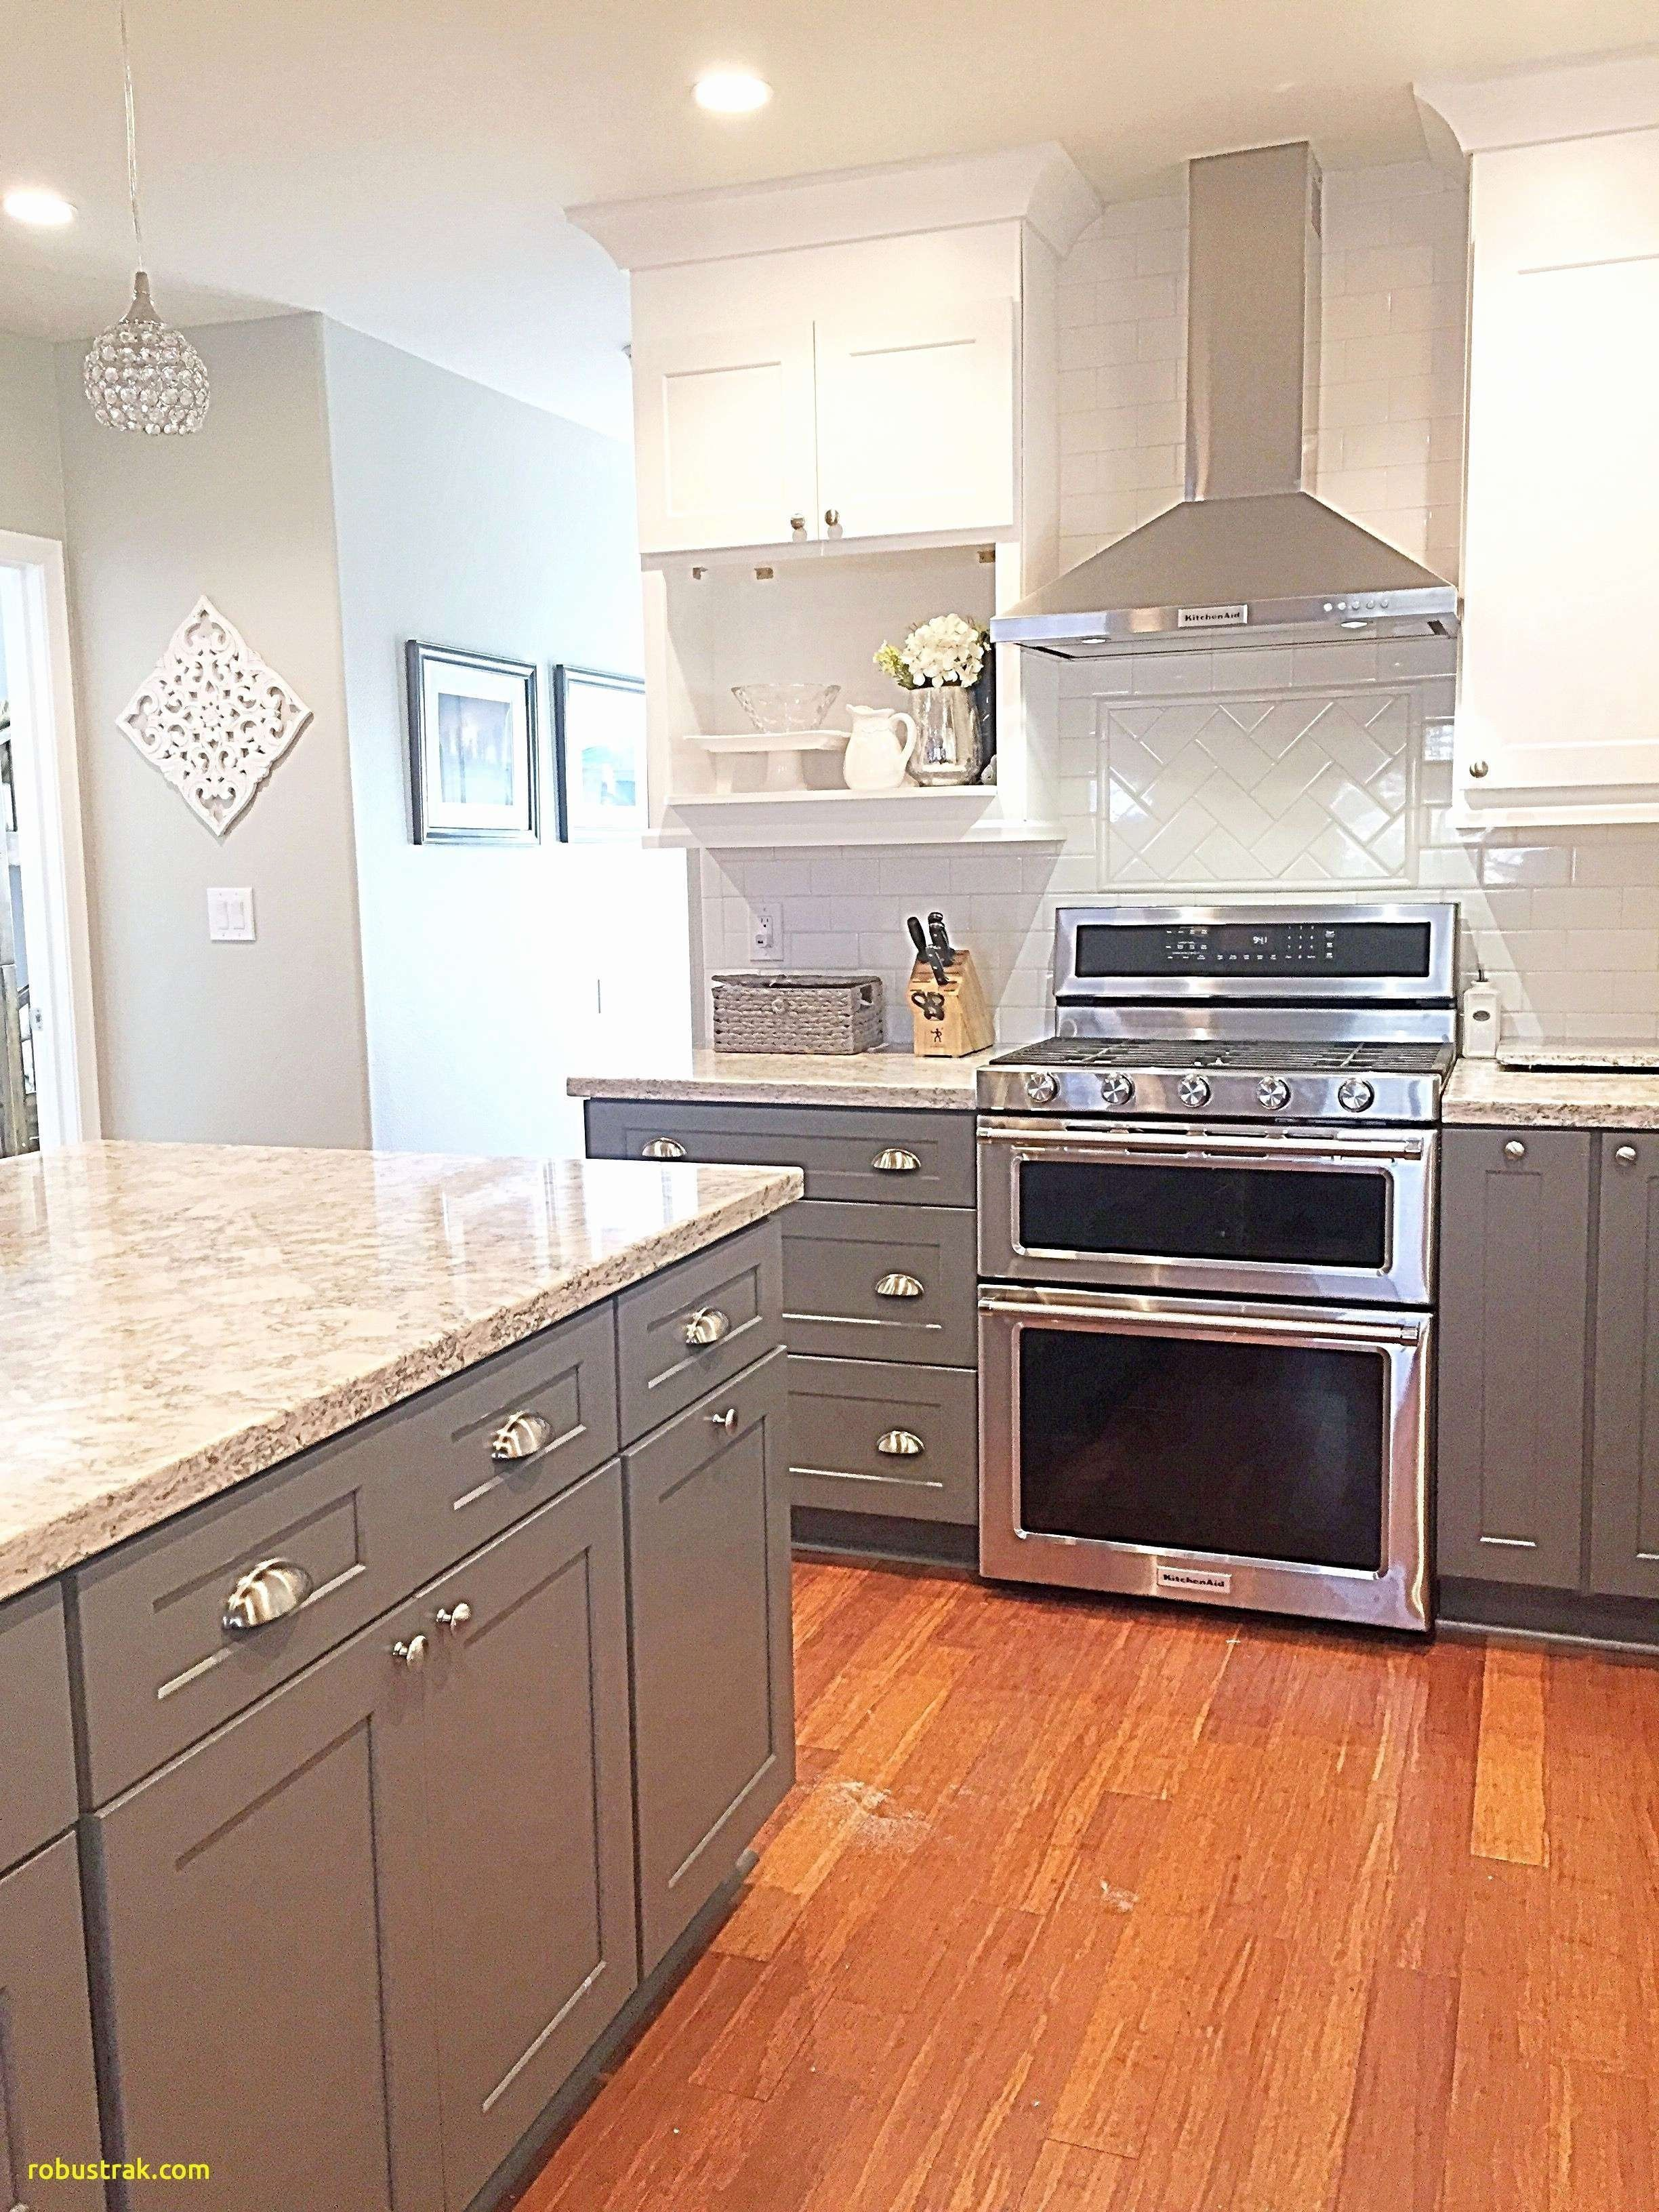 Elegant Clearance Kitchen Cabinets – The Most Elegant and ...